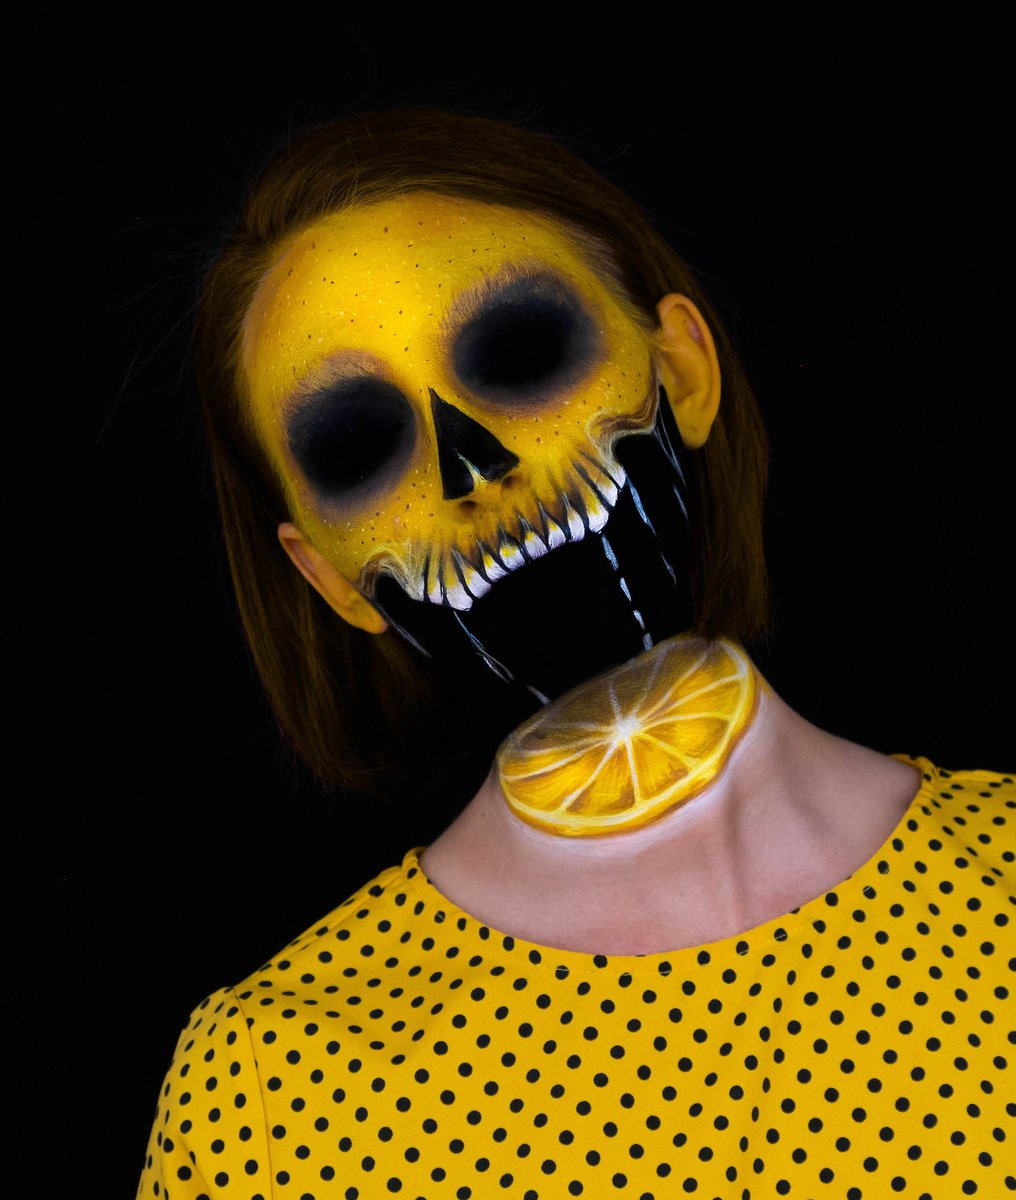 💀🍋Lemon Sliced 🍋💀 by @kristallure.fx using EDGE Face & Body Makeup in Black and Paradise Makeup AQ in Yellow  #mehronmakeup #paradisemakeupaq #mehronedge #facepainting #lemon #skull #skullmakeup #illusionmakeup #creativemakeup https://t.co/qXh3duYj4S